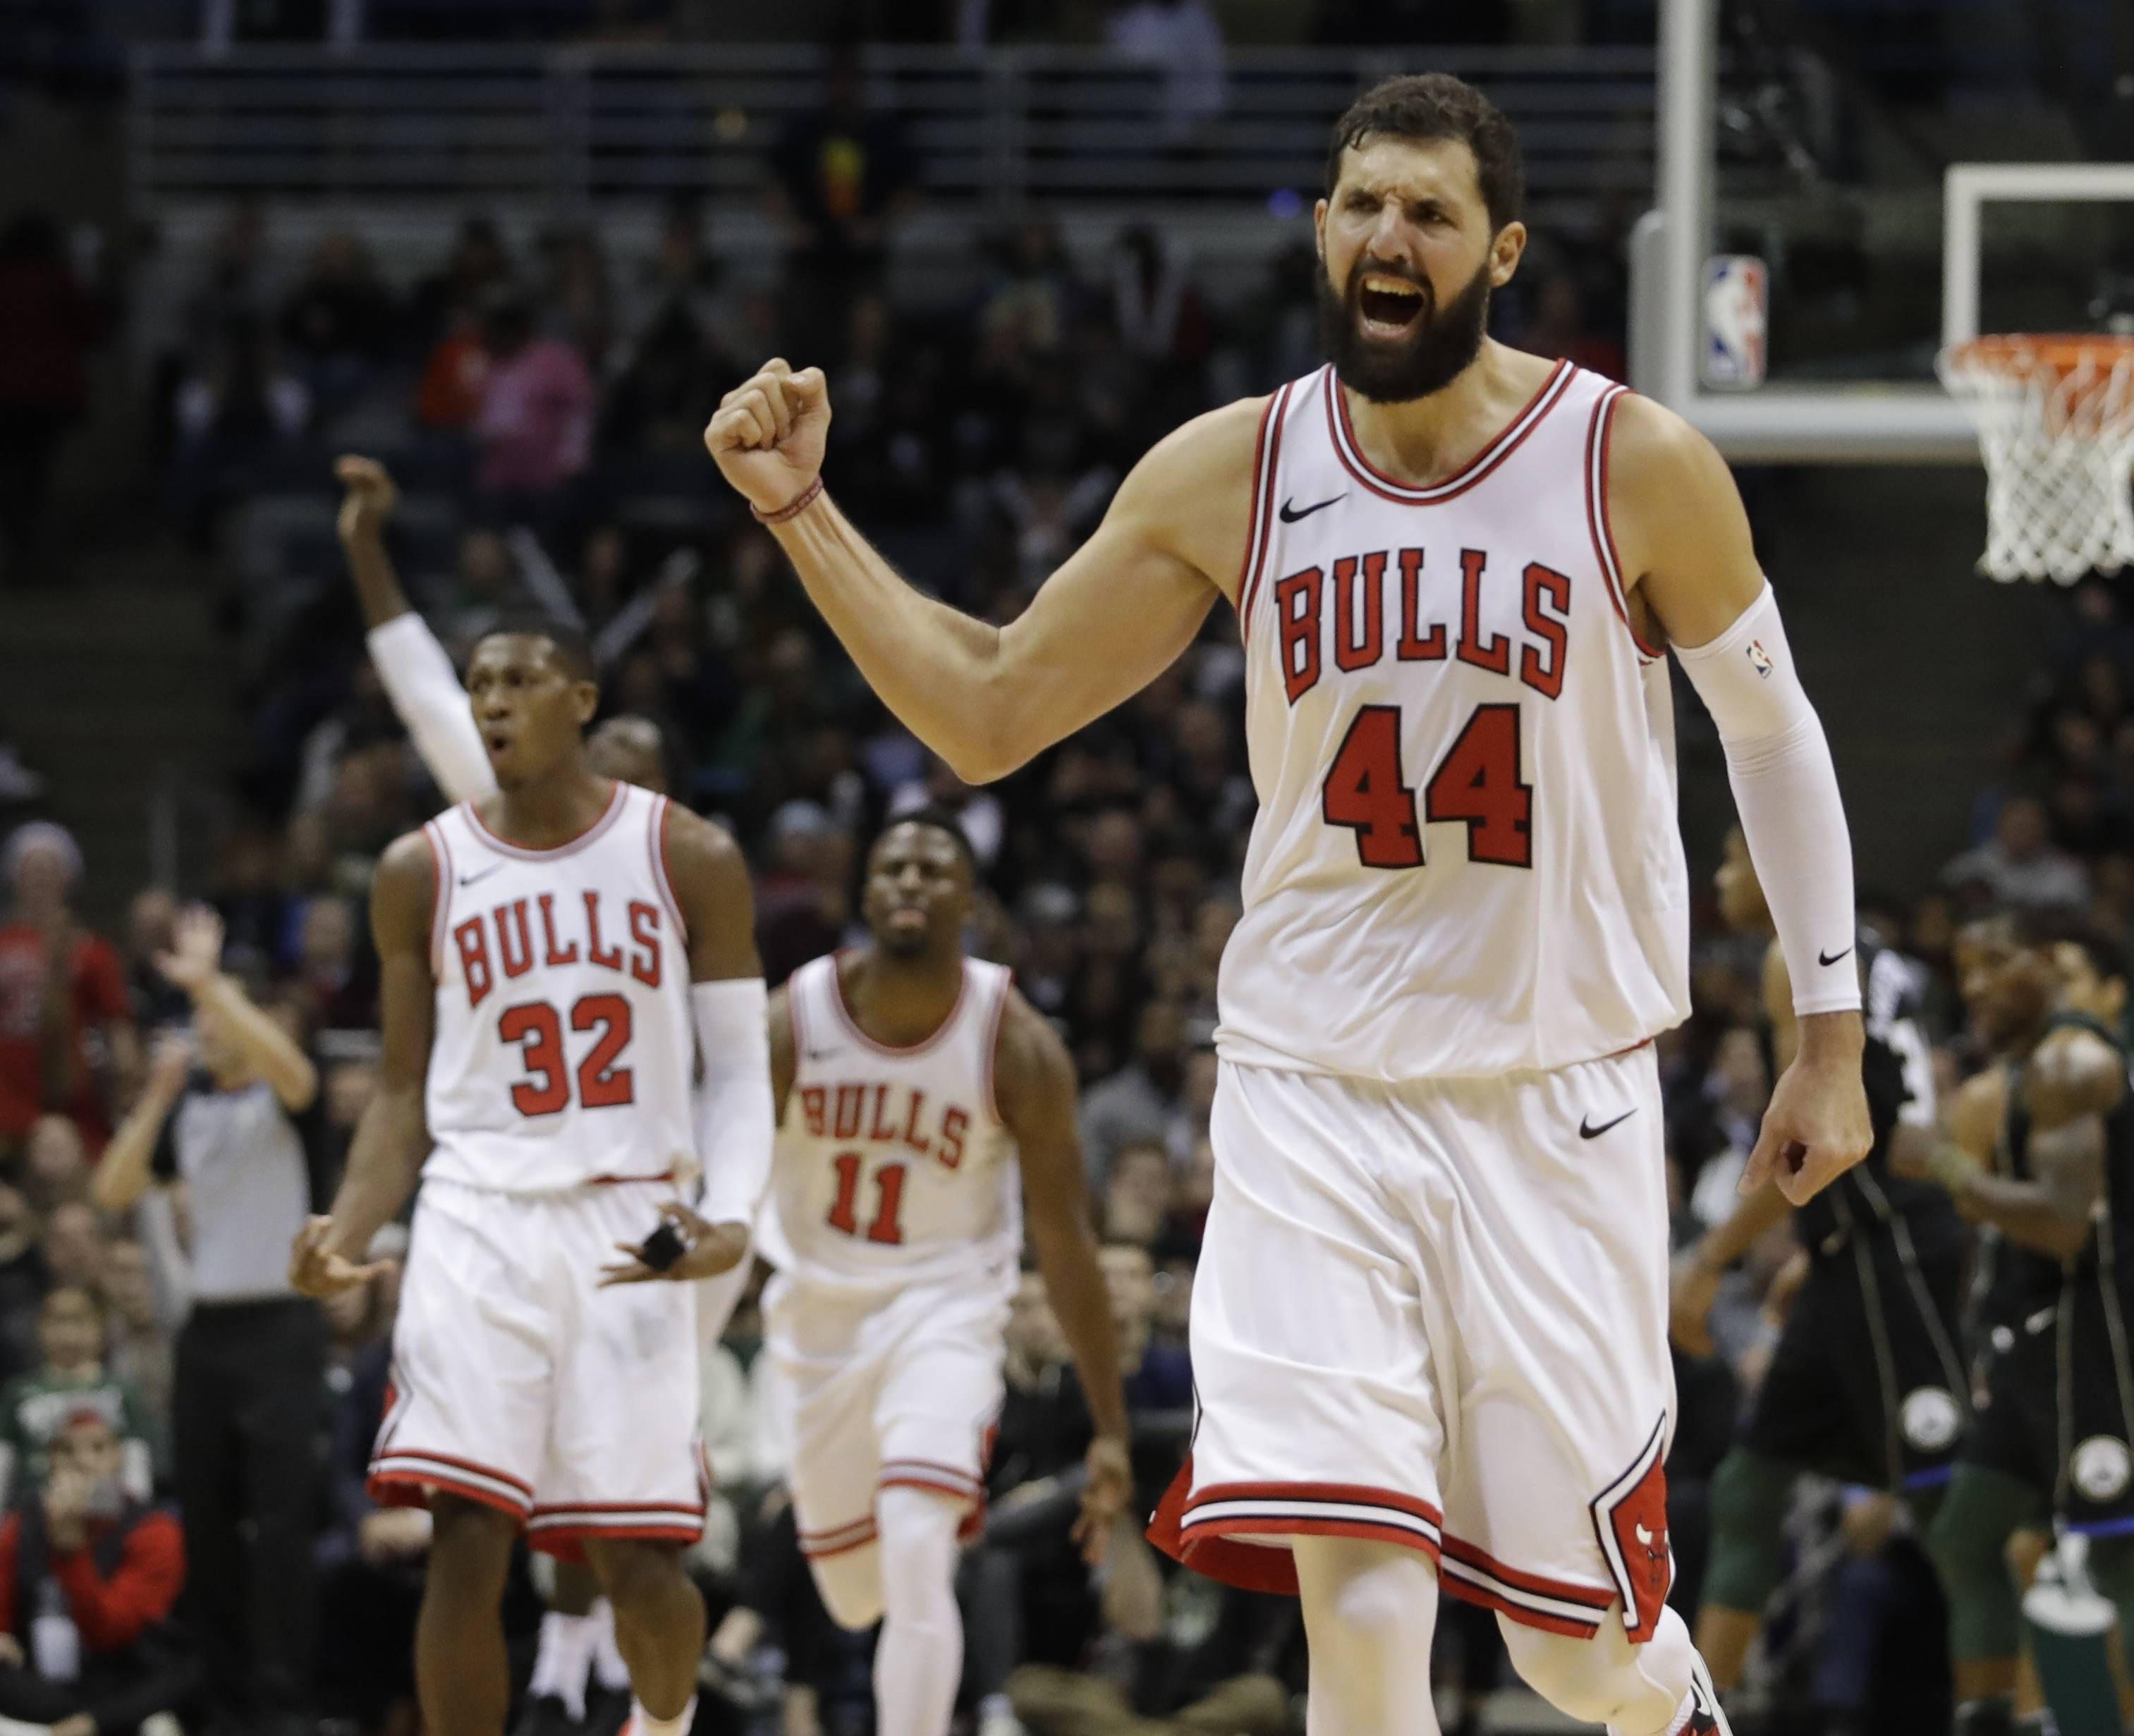 Chicago Bulls' Nikola Mirotic has been a key factor in the recent roll the Bulls have been on, averaging 18.1 points and shooting 48 percent from 3-point range this season.